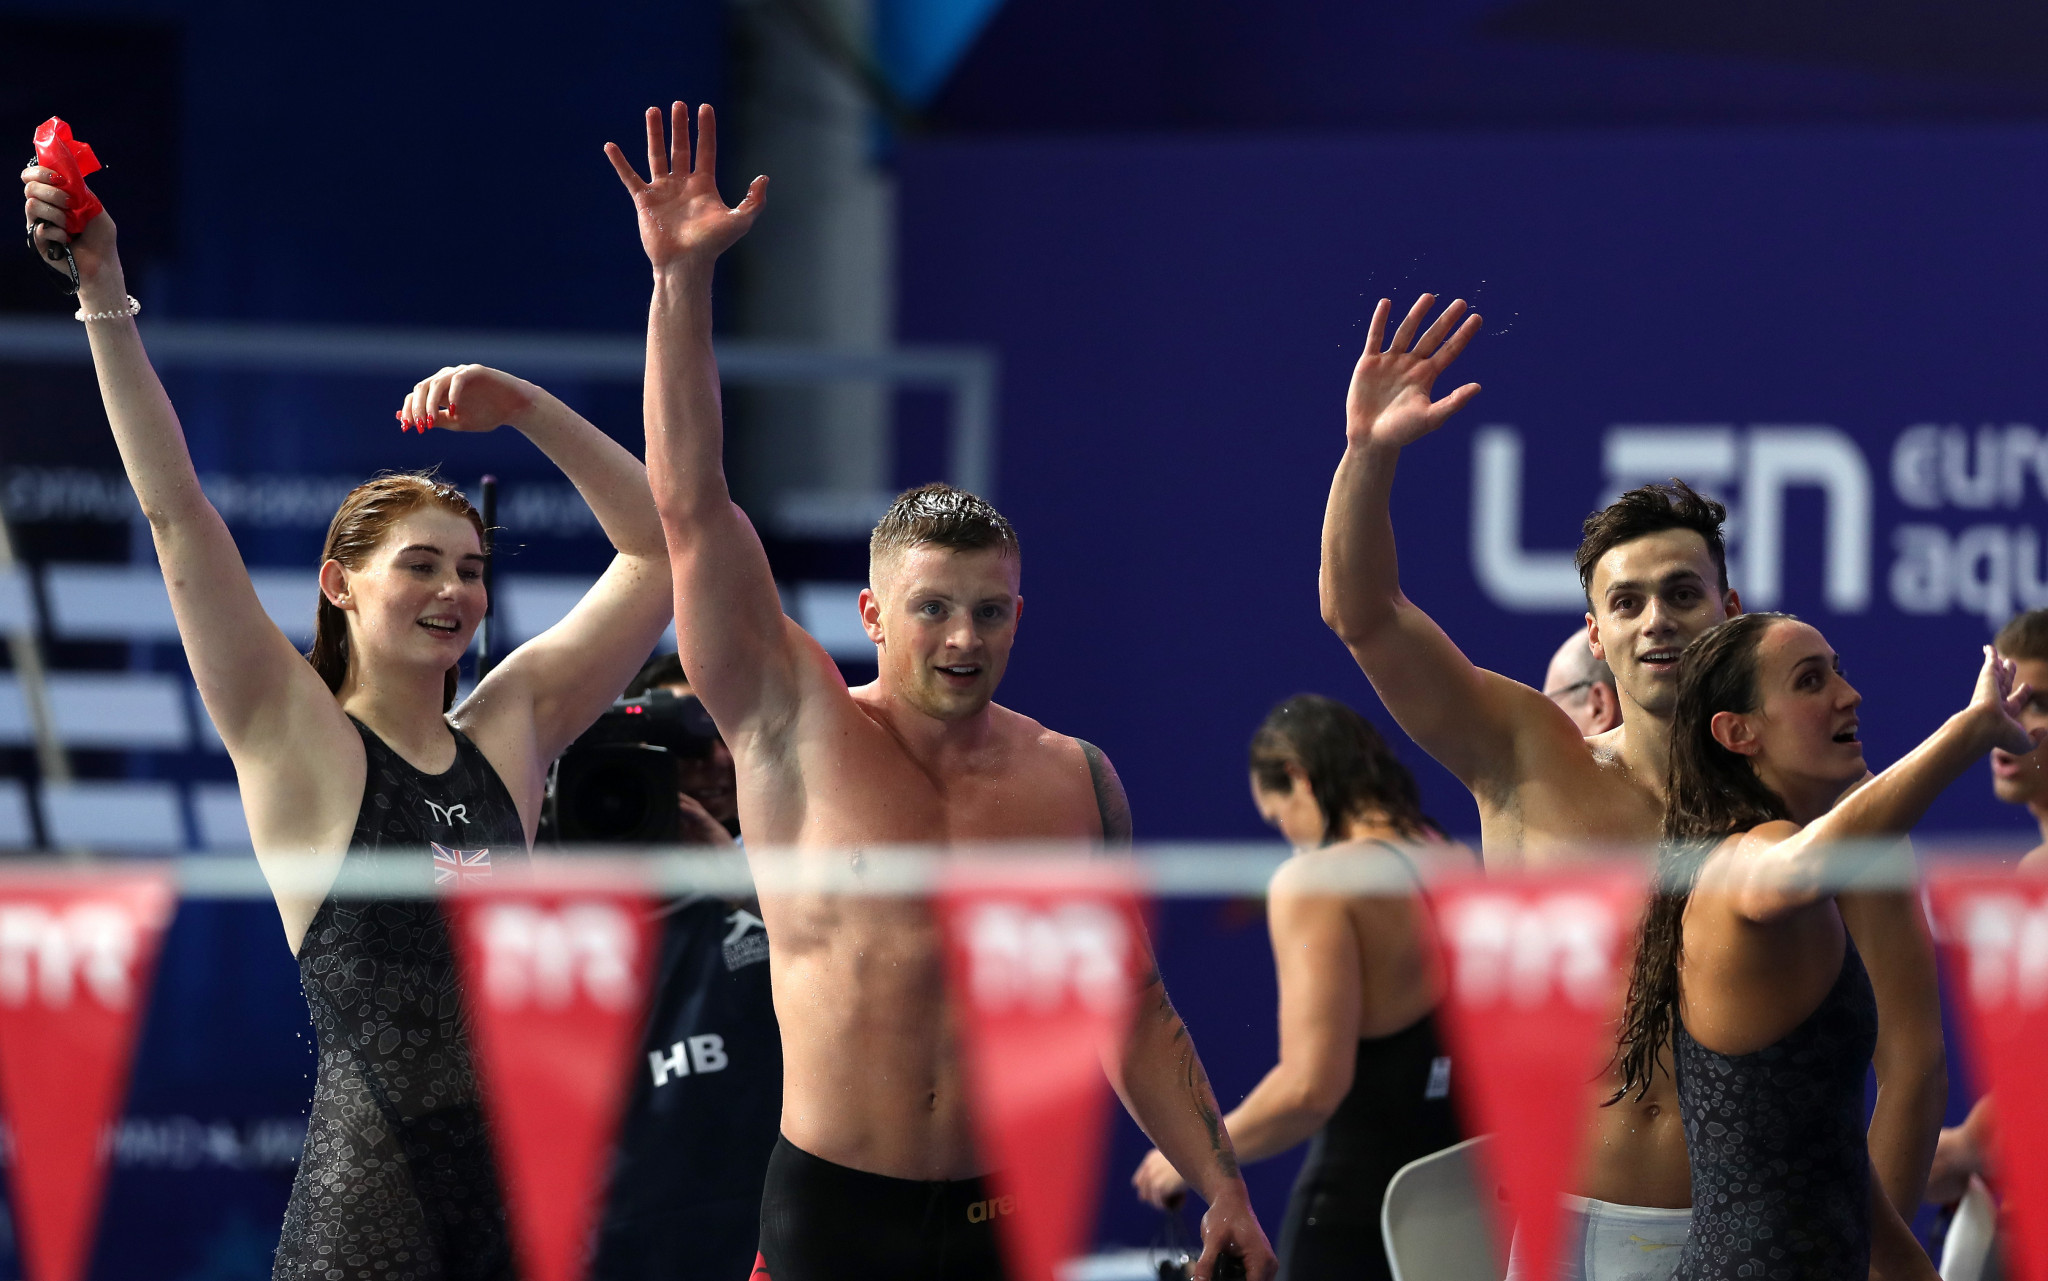 Hosts Great Britain broke their own continental record in the mixed 4x100 metres medley relay to round off the fourth evening of swimming action at the Glasgow 2018 European Championships ©Getty Images